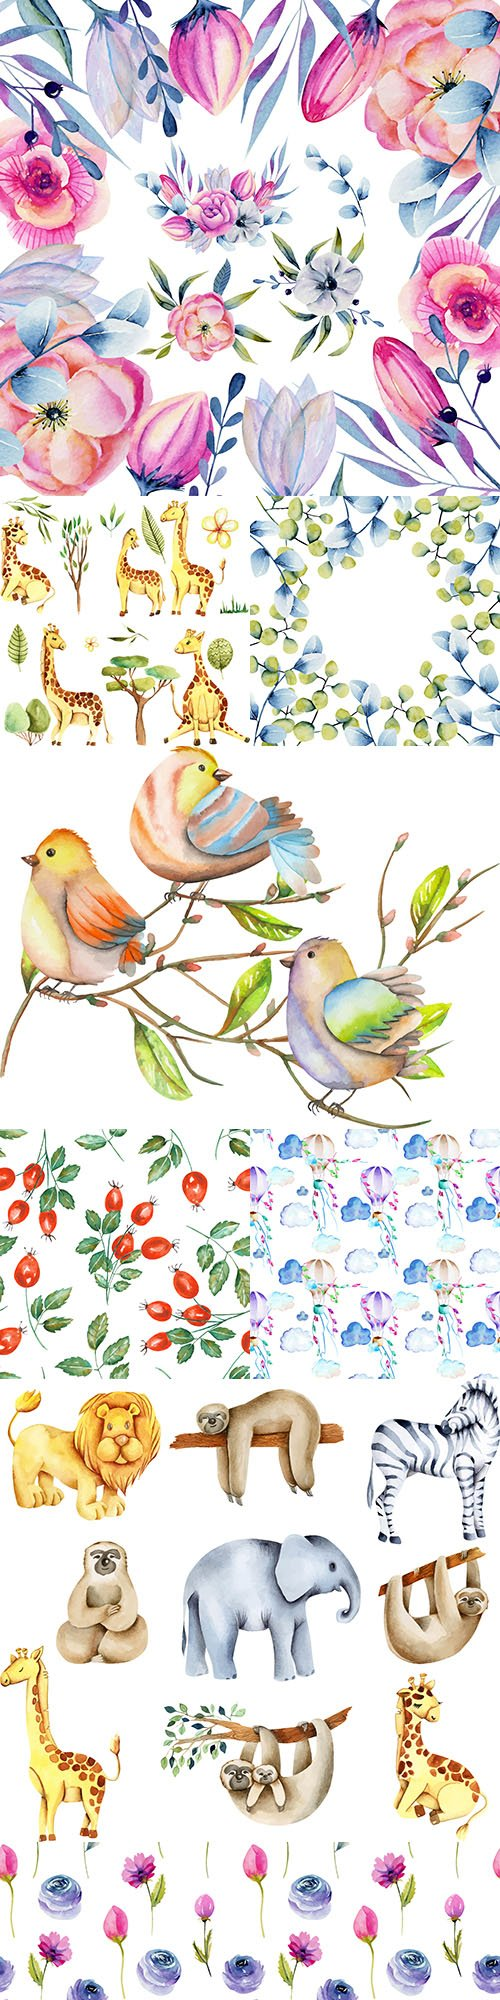 Animals and flower bouquets collection watercolor illustrations